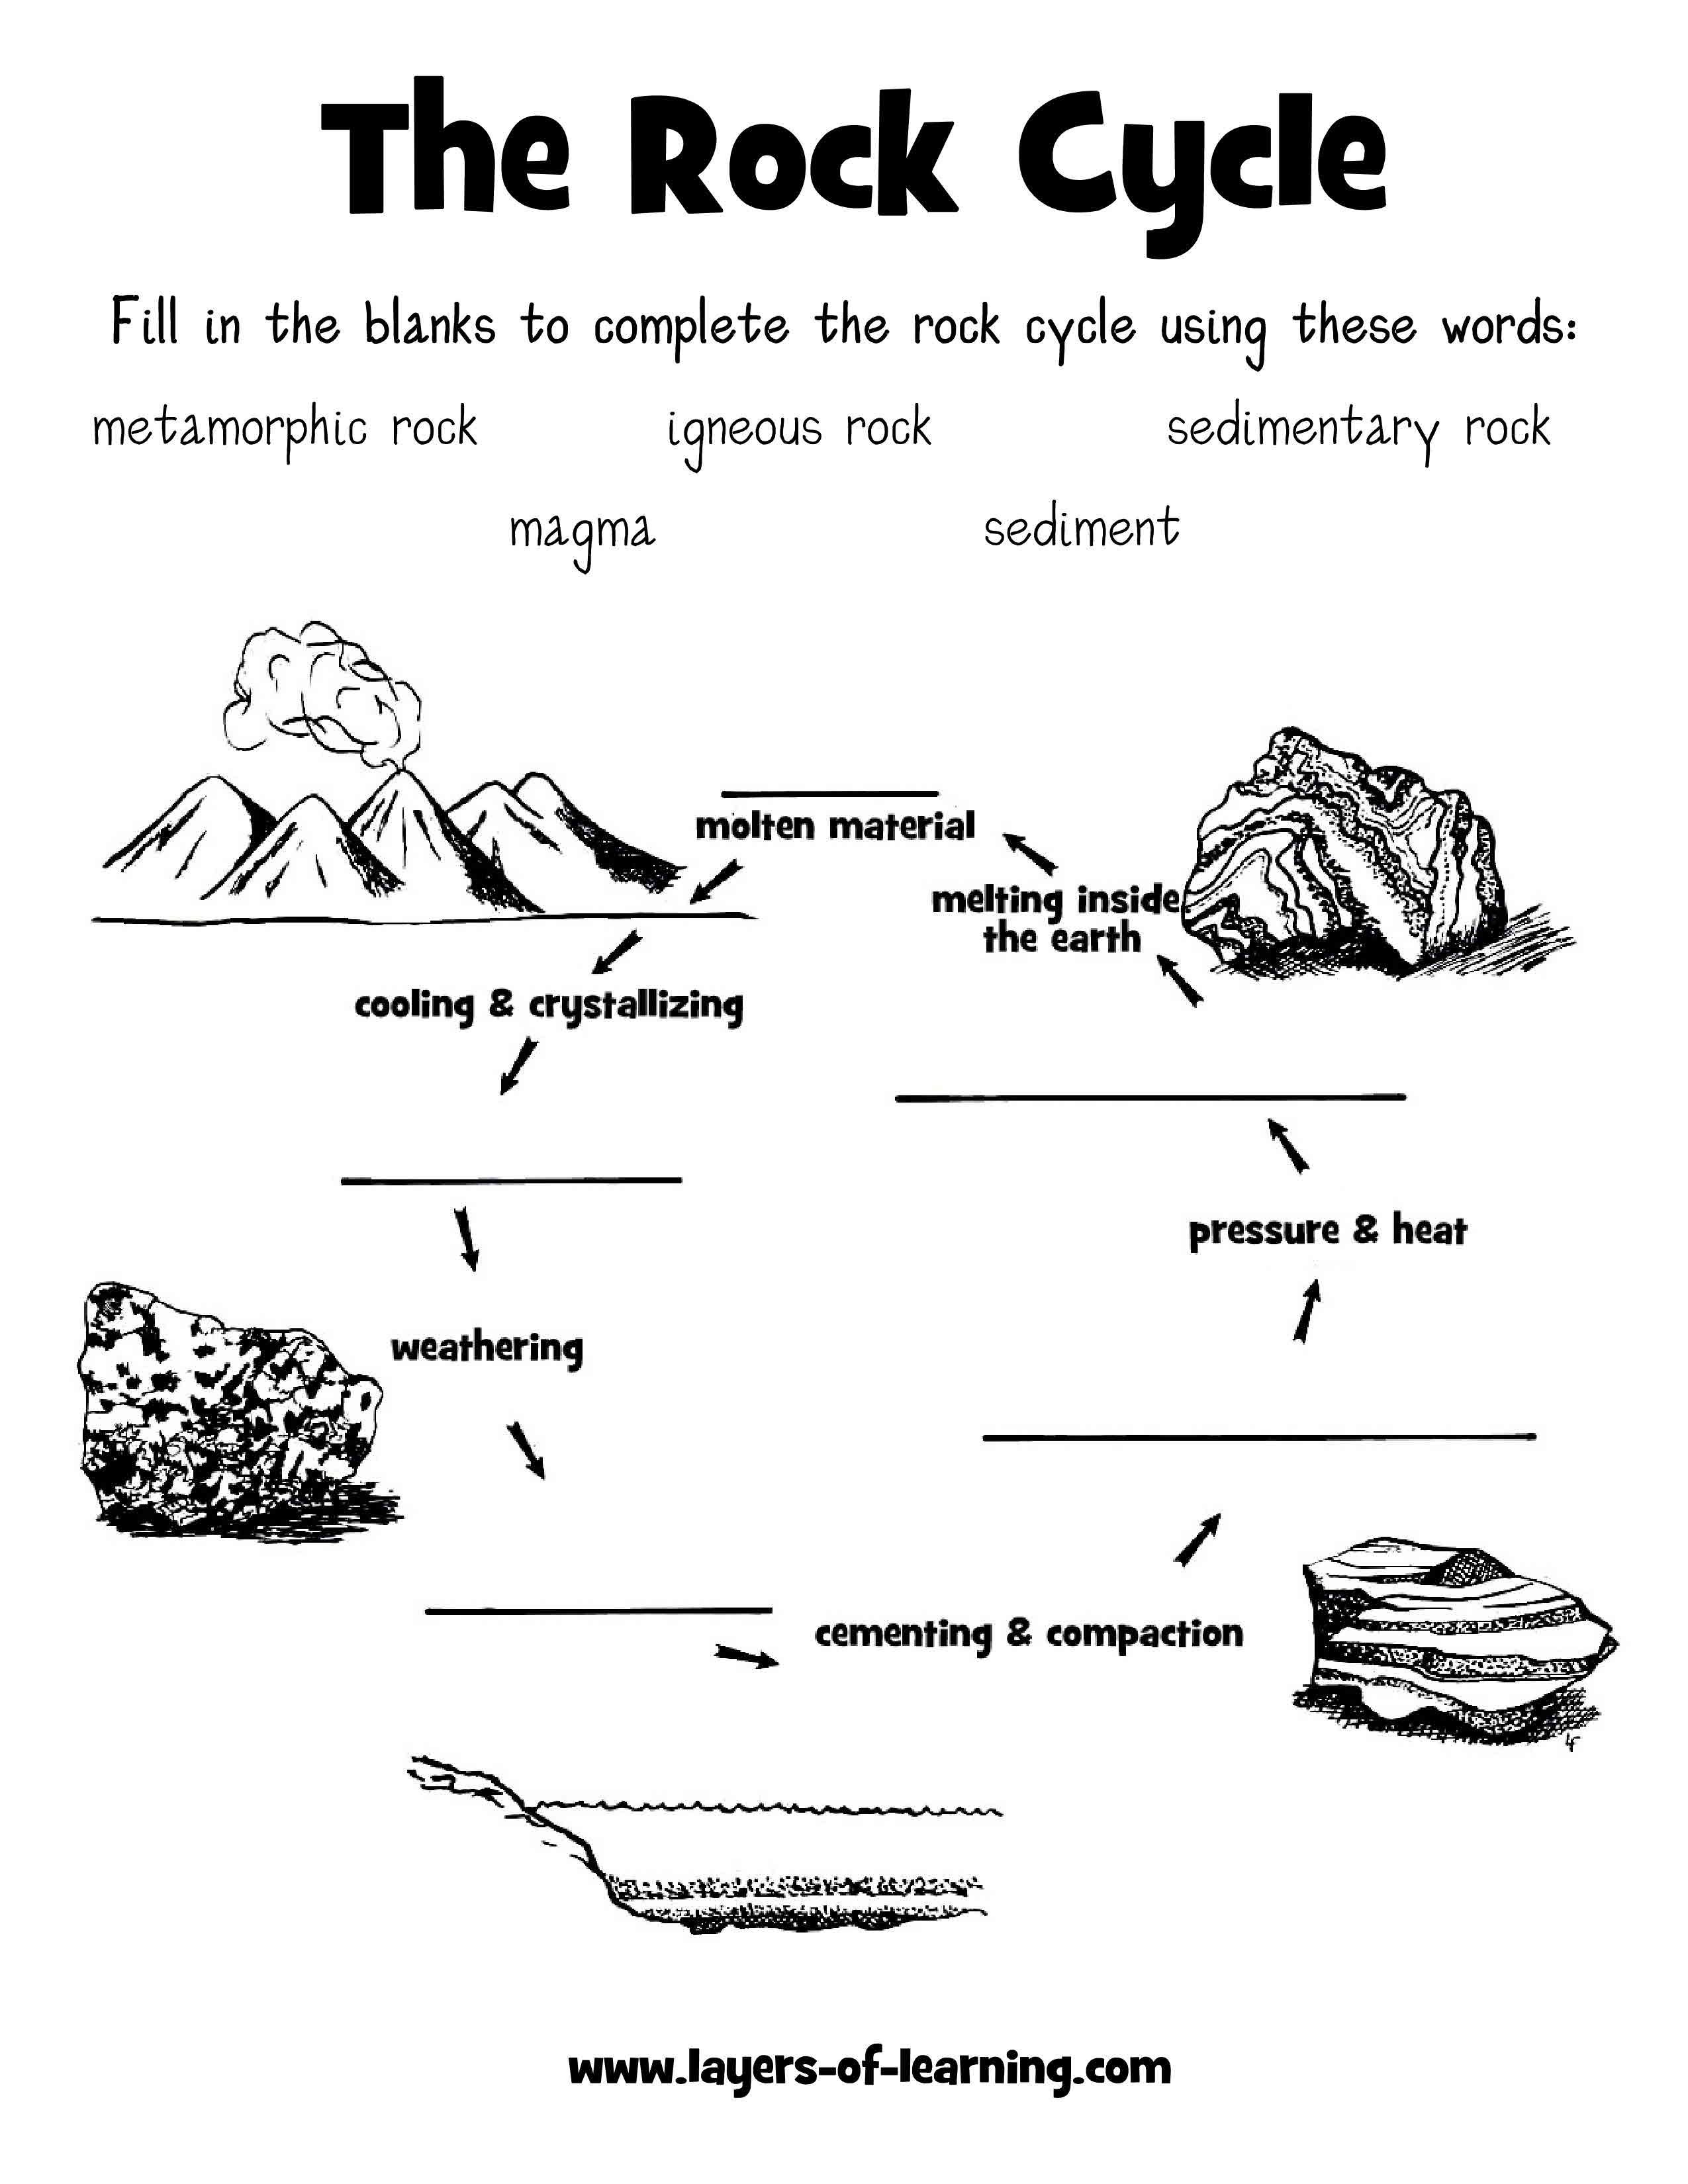 Rock Cycle Worksheet - Layers Of Learning | Science | Rock Cycle | Science Worksheets For 4Th Grade Free Printable